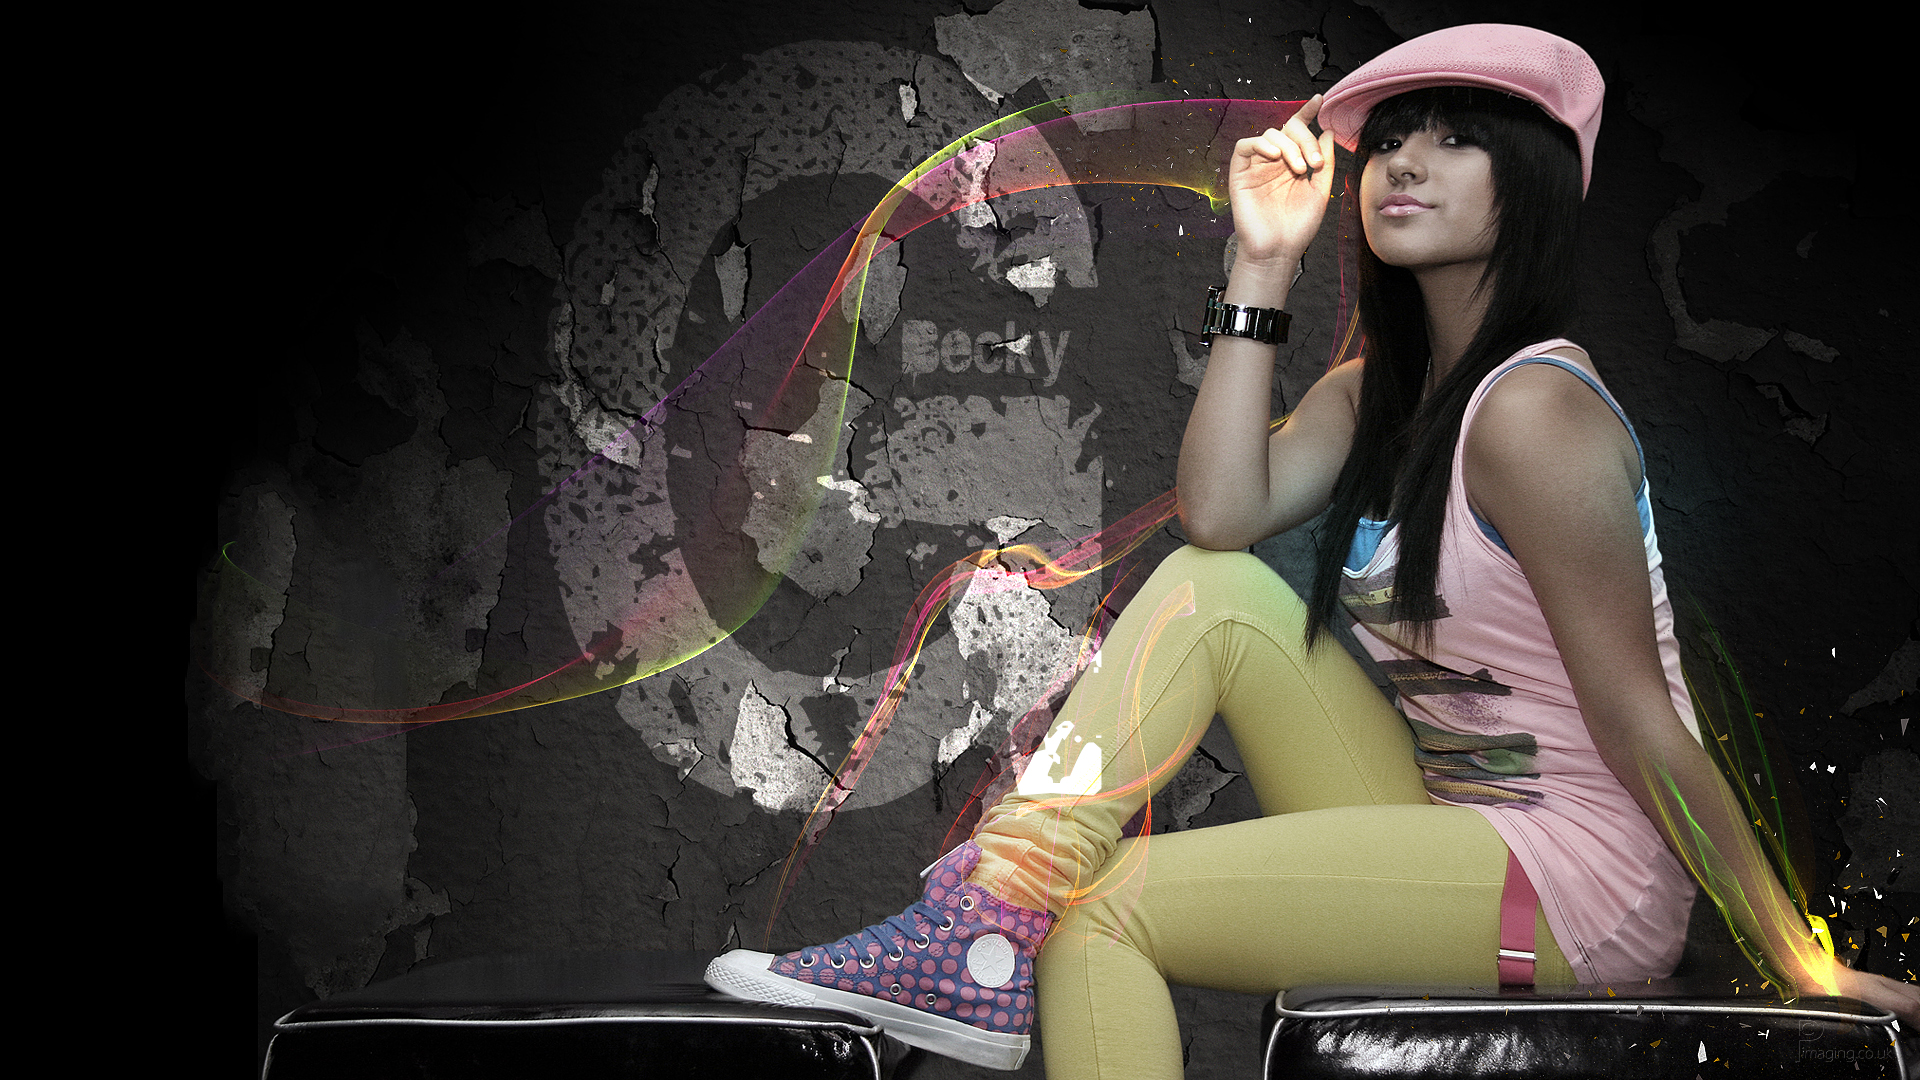 Becky G 2013 wallpaper High Quality WallpapersWallpaper Desktop 1920x1080